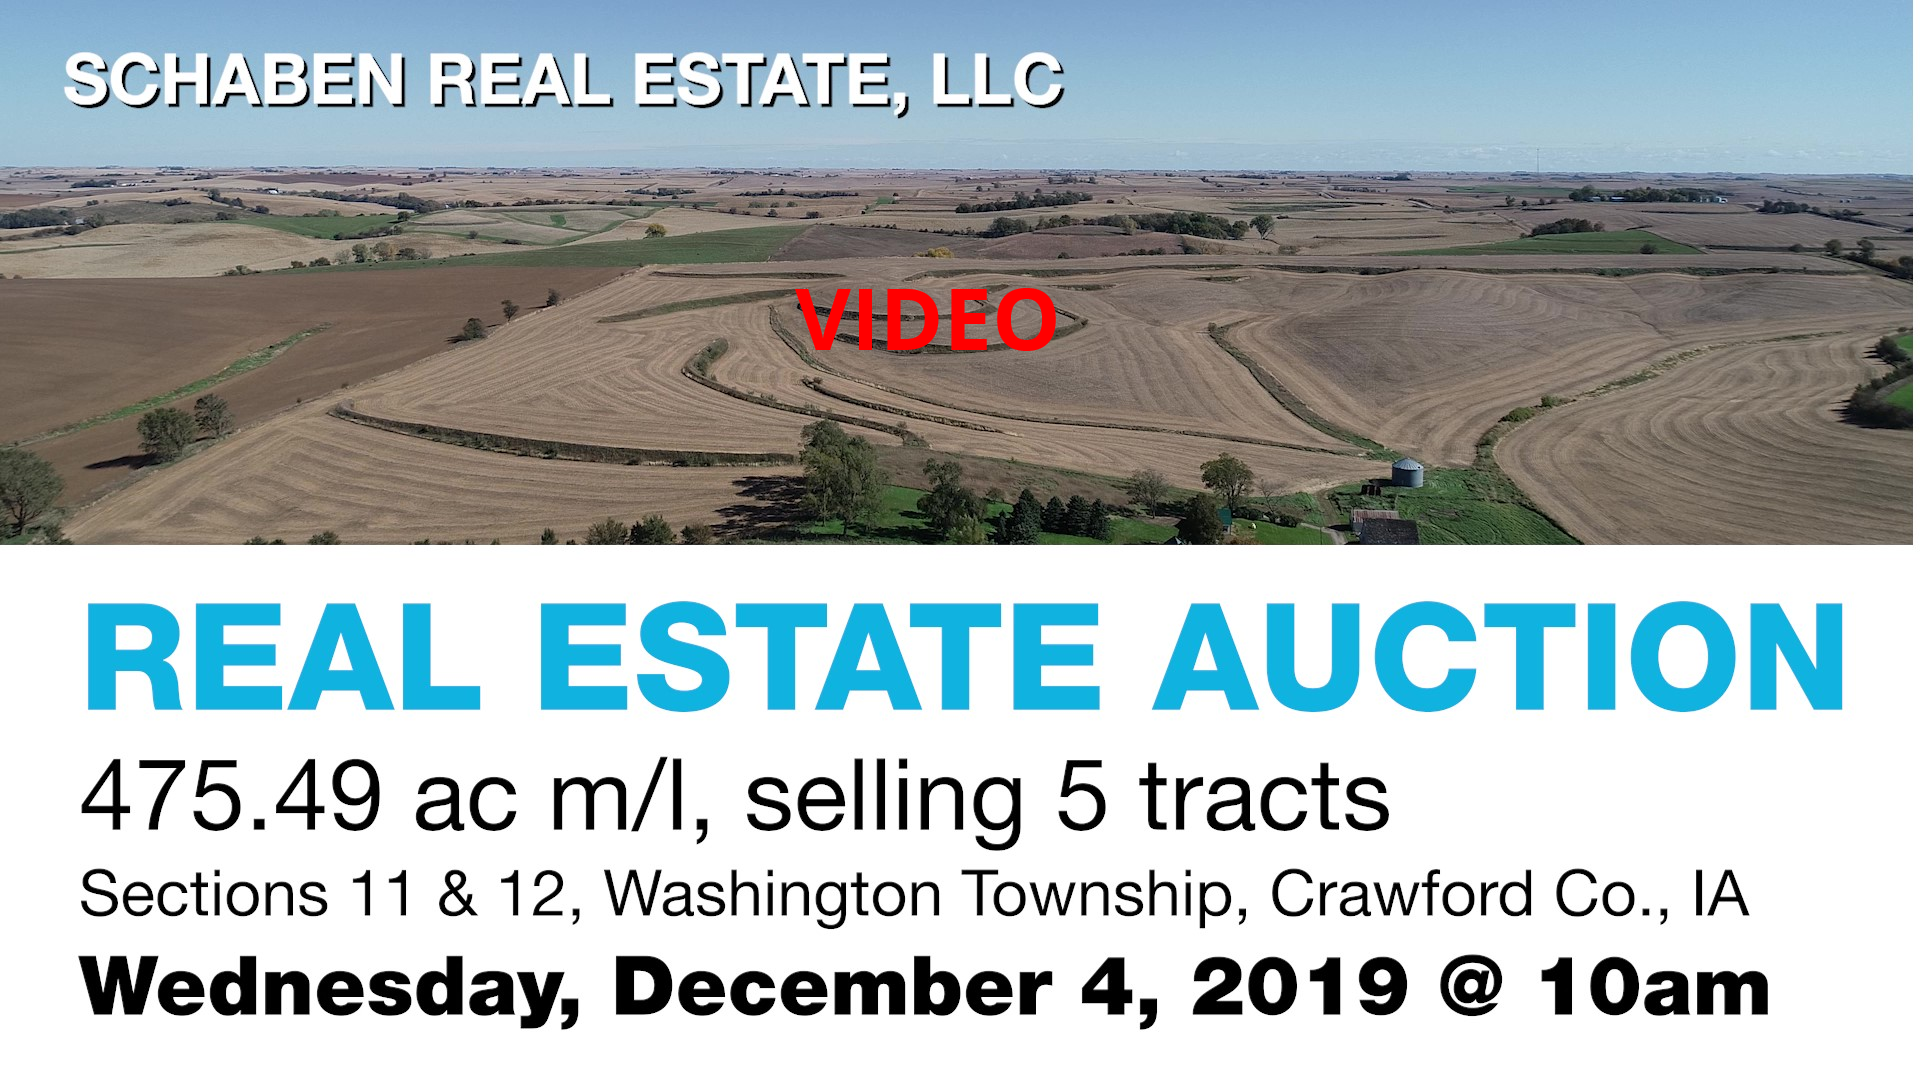 Click here for a video of Von Tersch Trust land to be auctioned off on Wed, December 4th, 2019